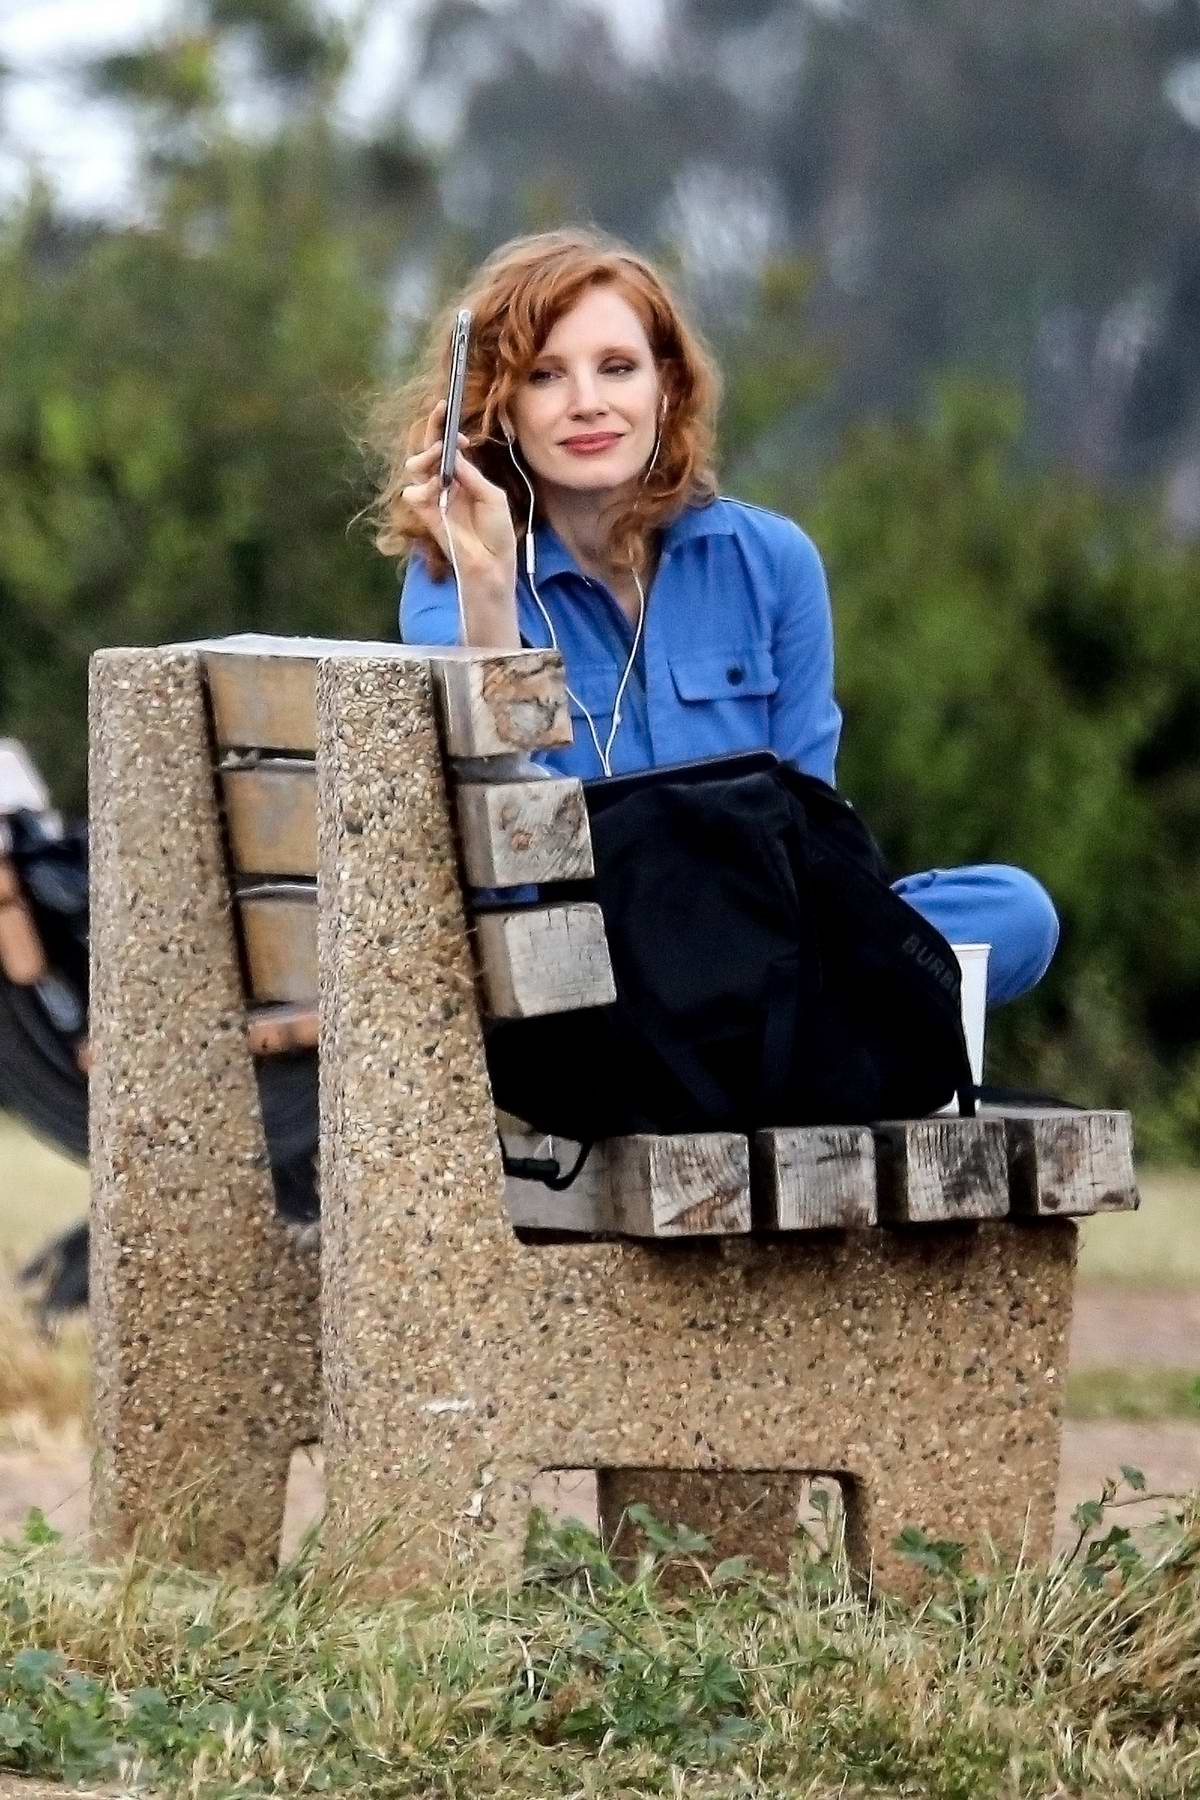 Jessica Chastain takes a break from quarantine as she enjoys some time on a bench in Pacific Palisades, California